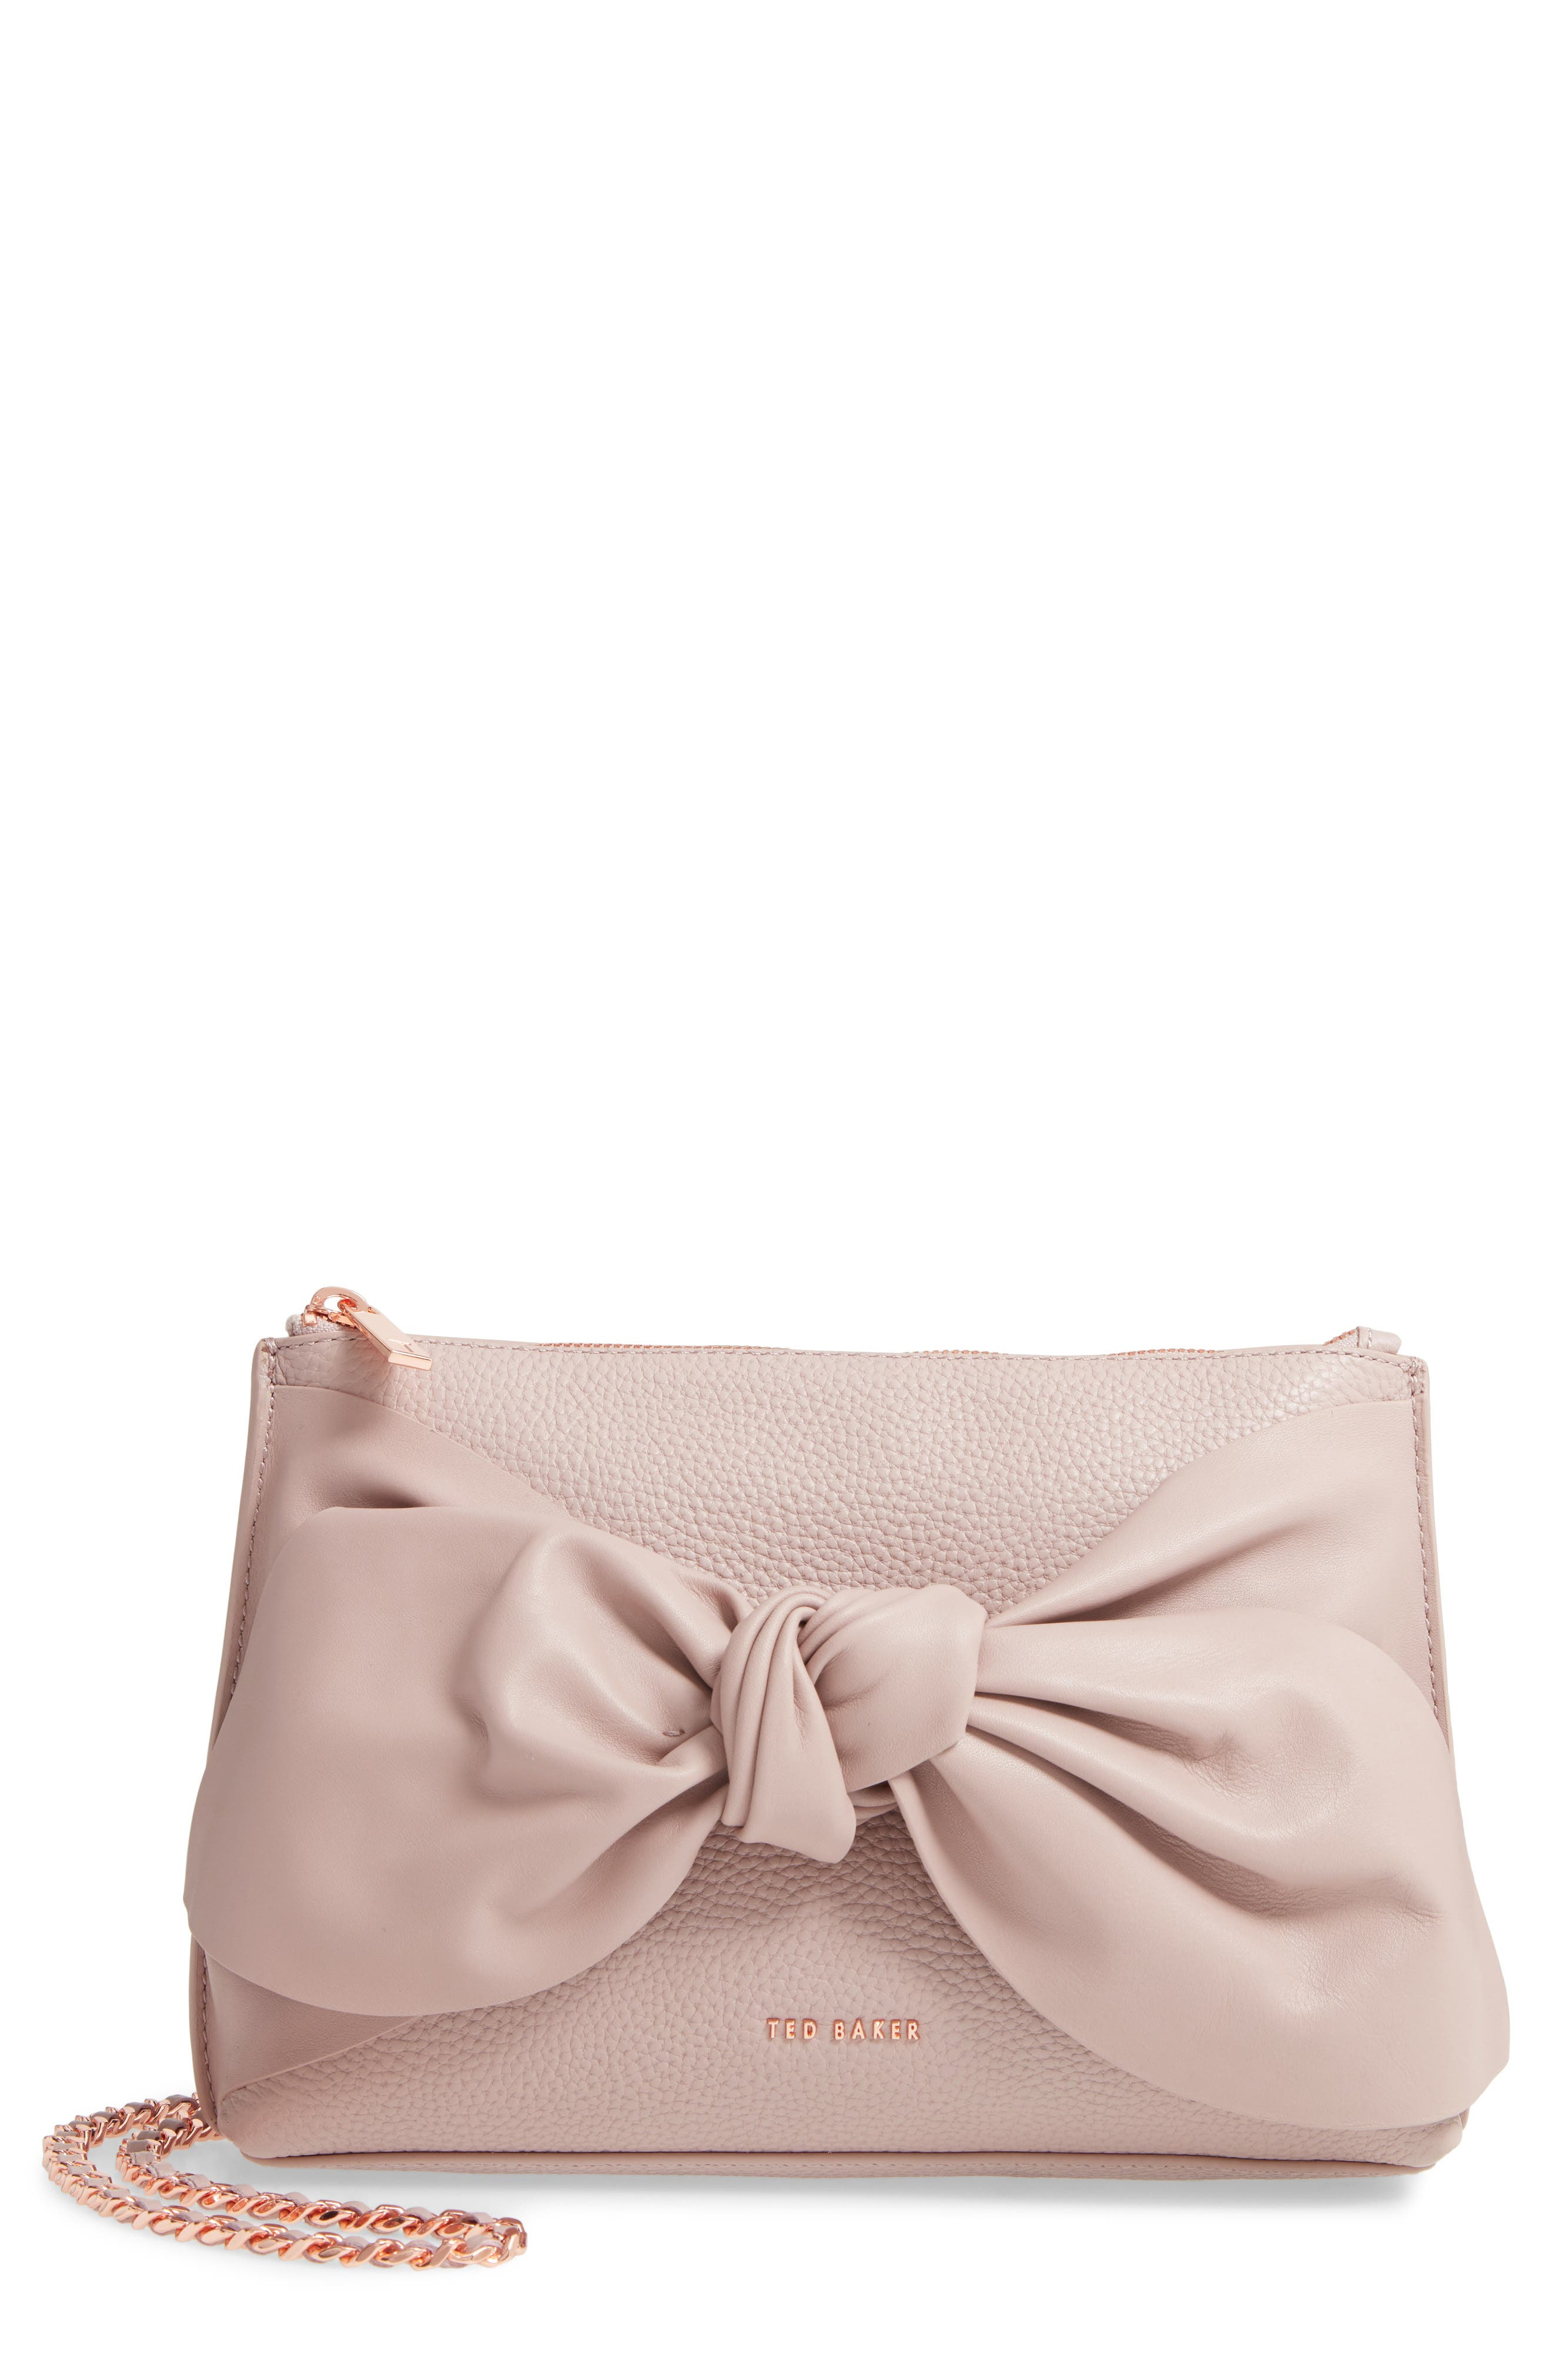 27b2feda24 Ted Baker London Clutches & Pouches | Nordstrom